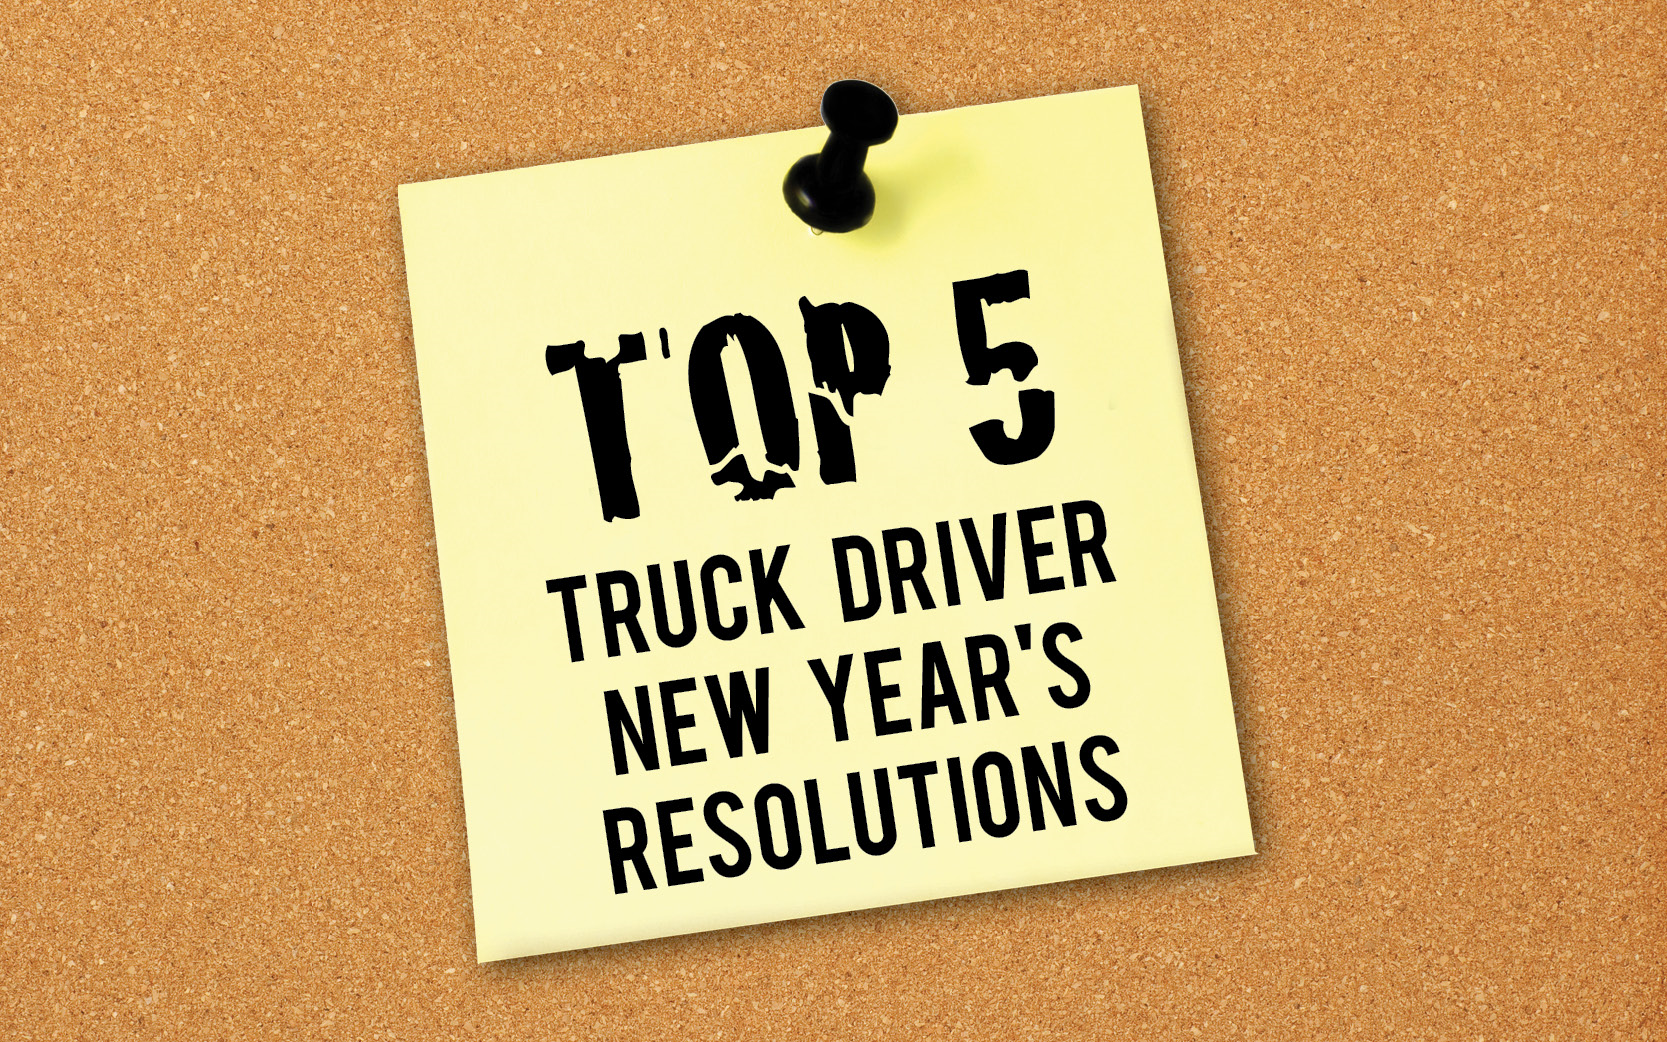 Top 5 Truck Driver New Year's Resolutions